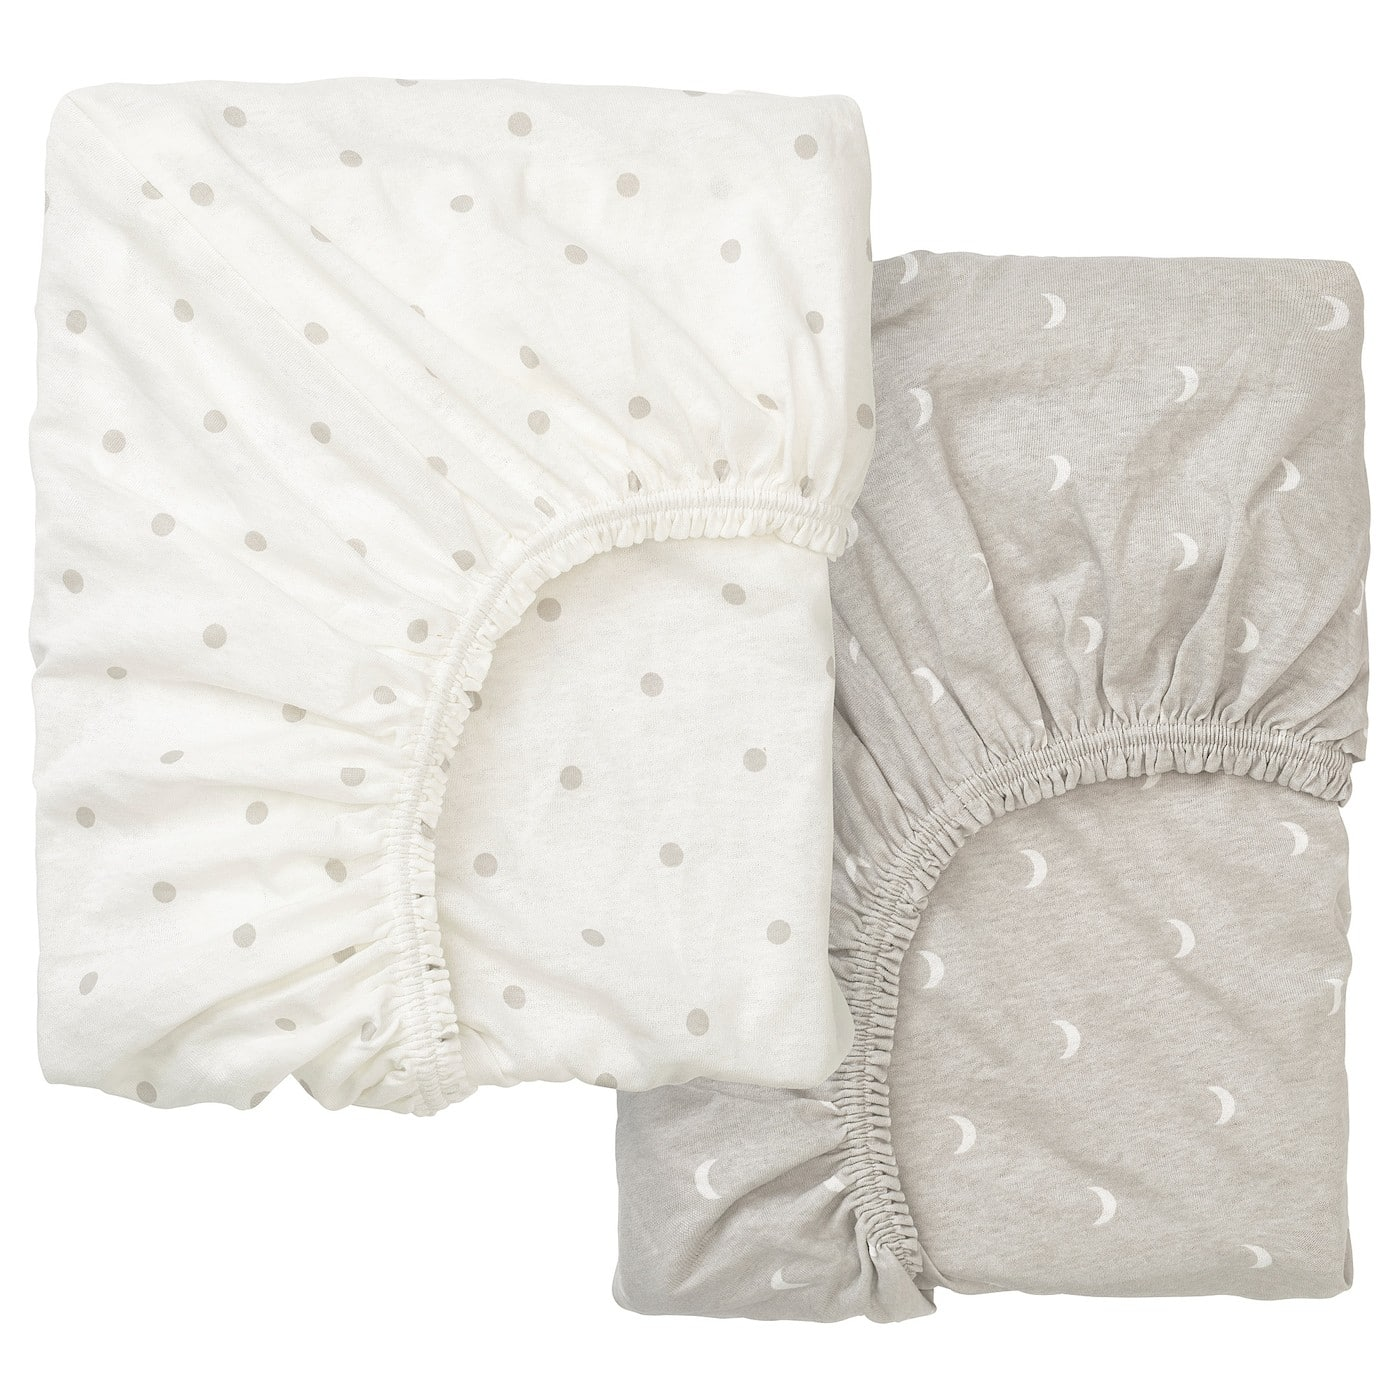 lenast-fitted-sheet-for-cot-dotted-moon__0751702_PE747166_S5